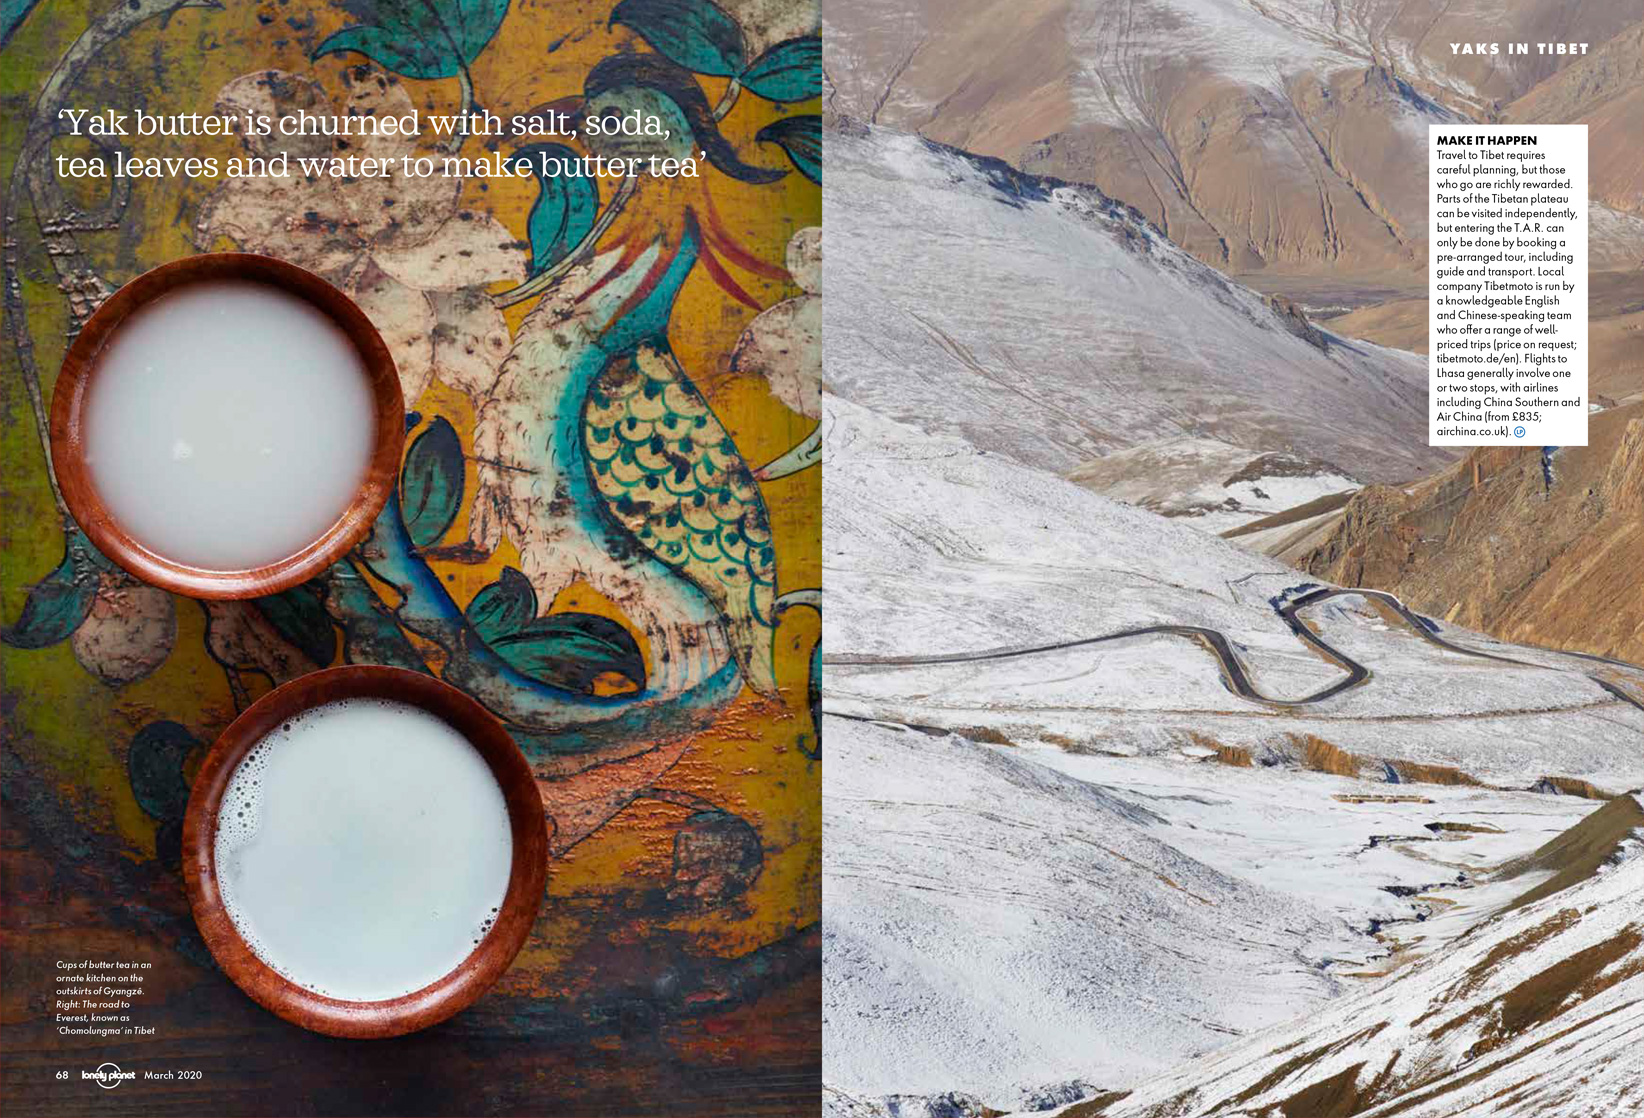 Tibet, Lonely Planet Traveller Magazine | Simon Urwin | Published Articles & Photography